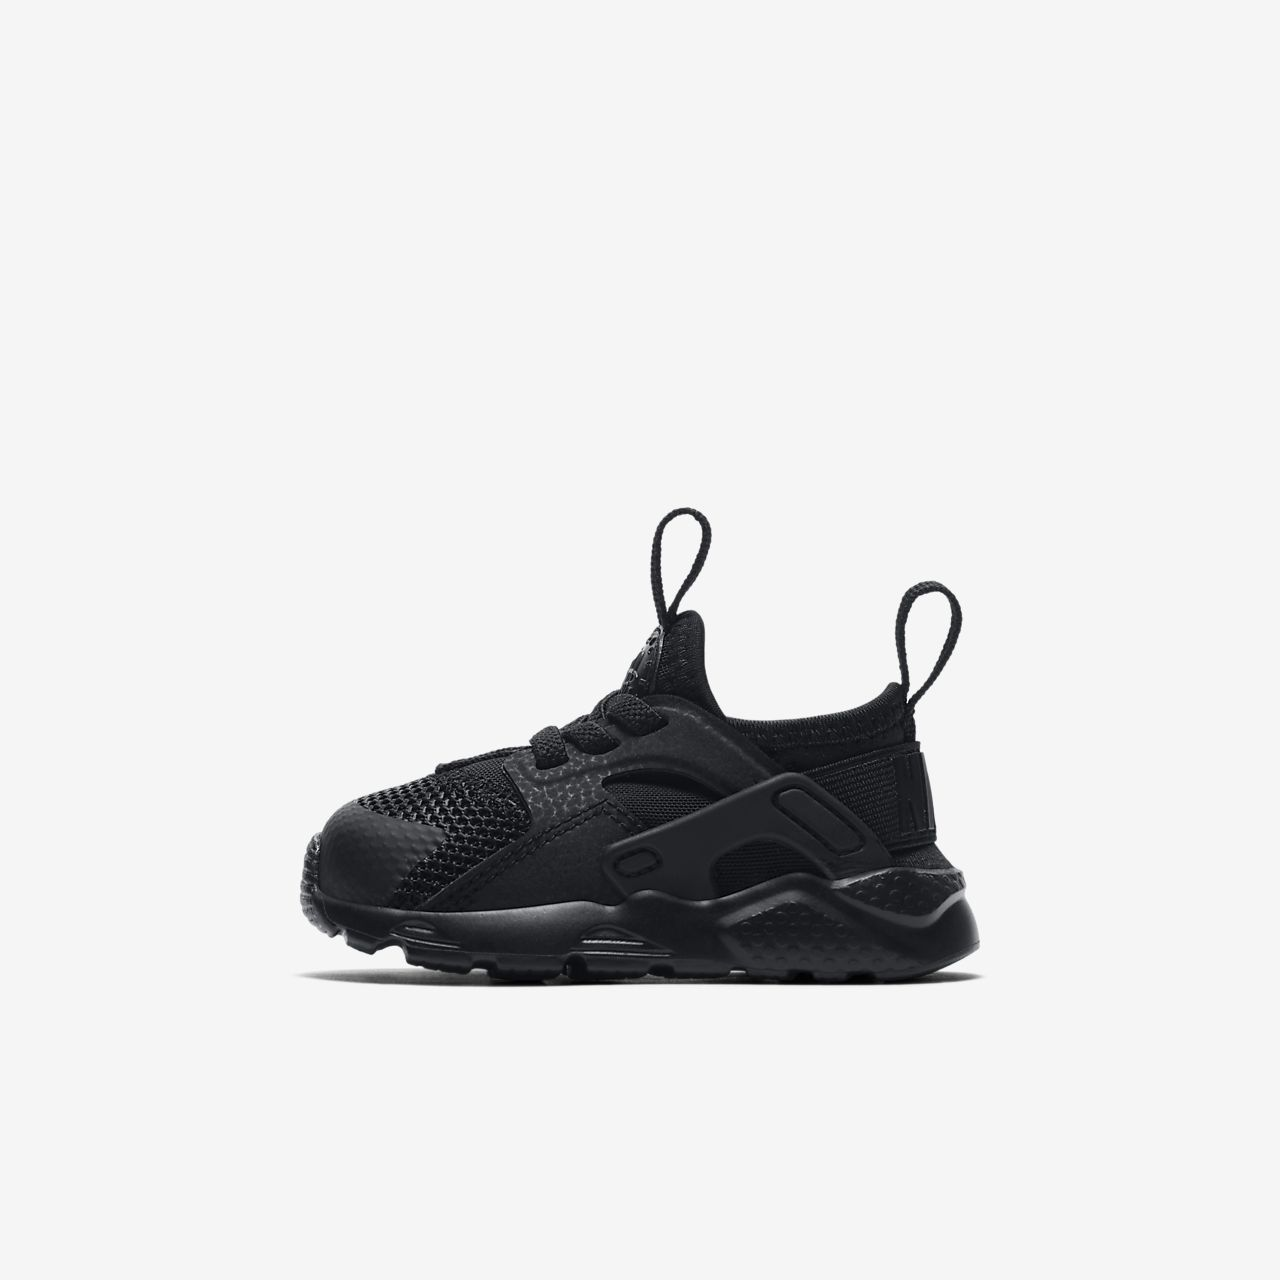 9490125ed3dad Nike Huarache Ultra Toddler Shoe. Nike.com CA